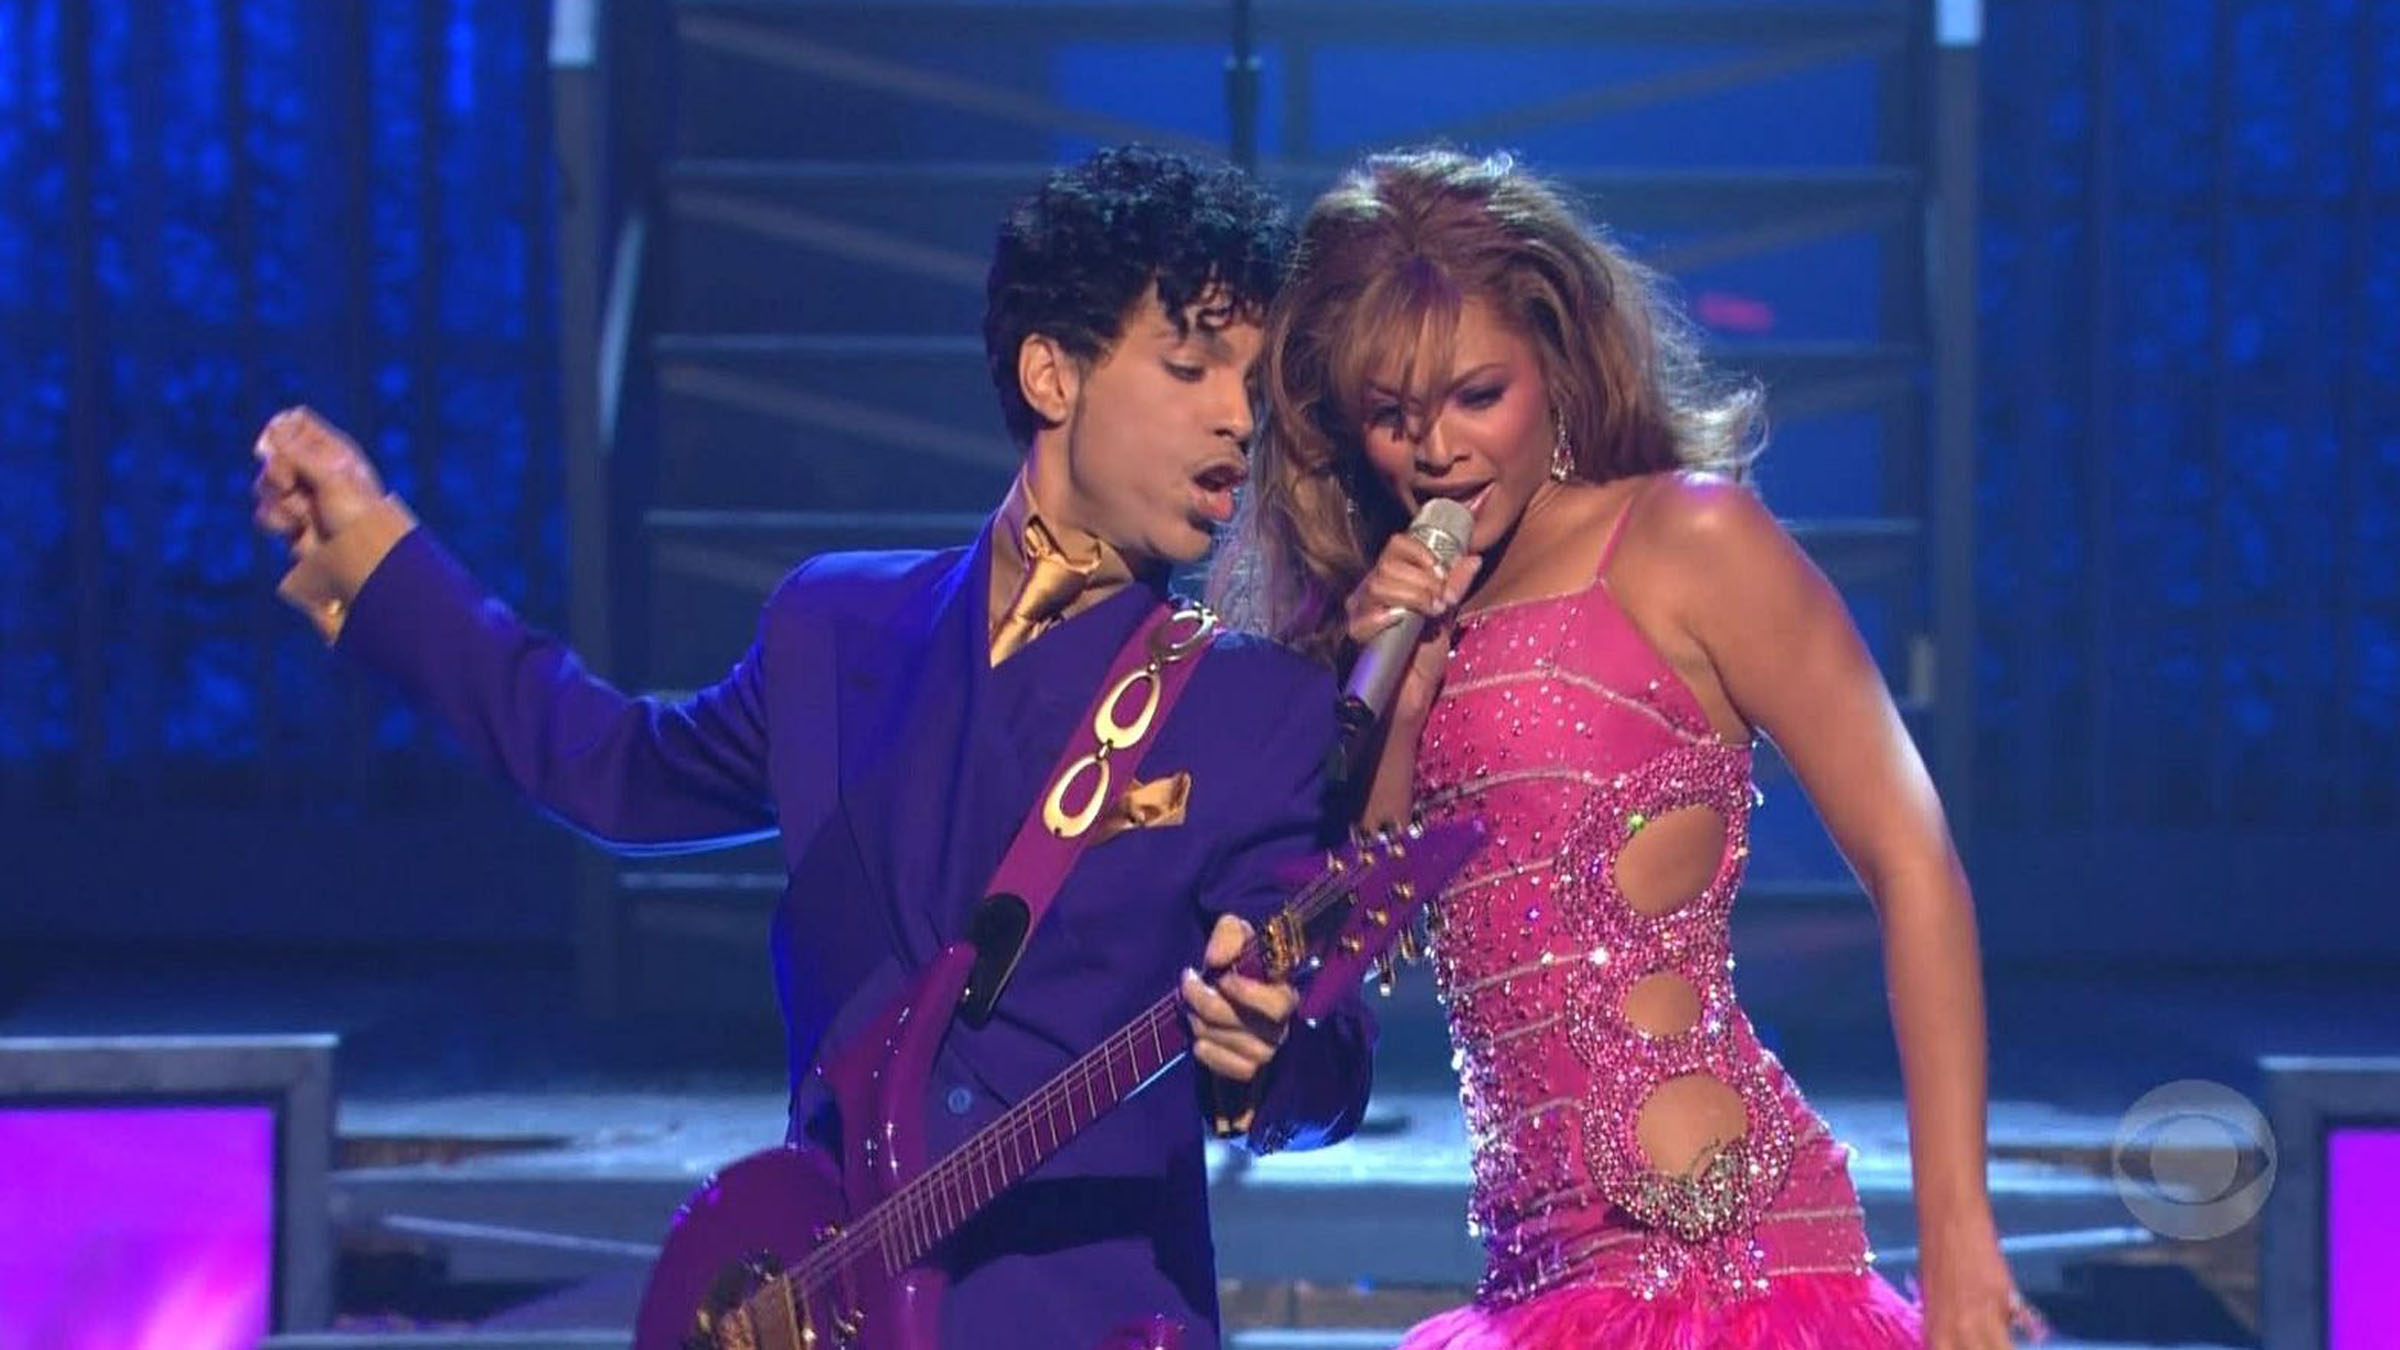 Beyonce prince hd wallpaper 335908.0.0